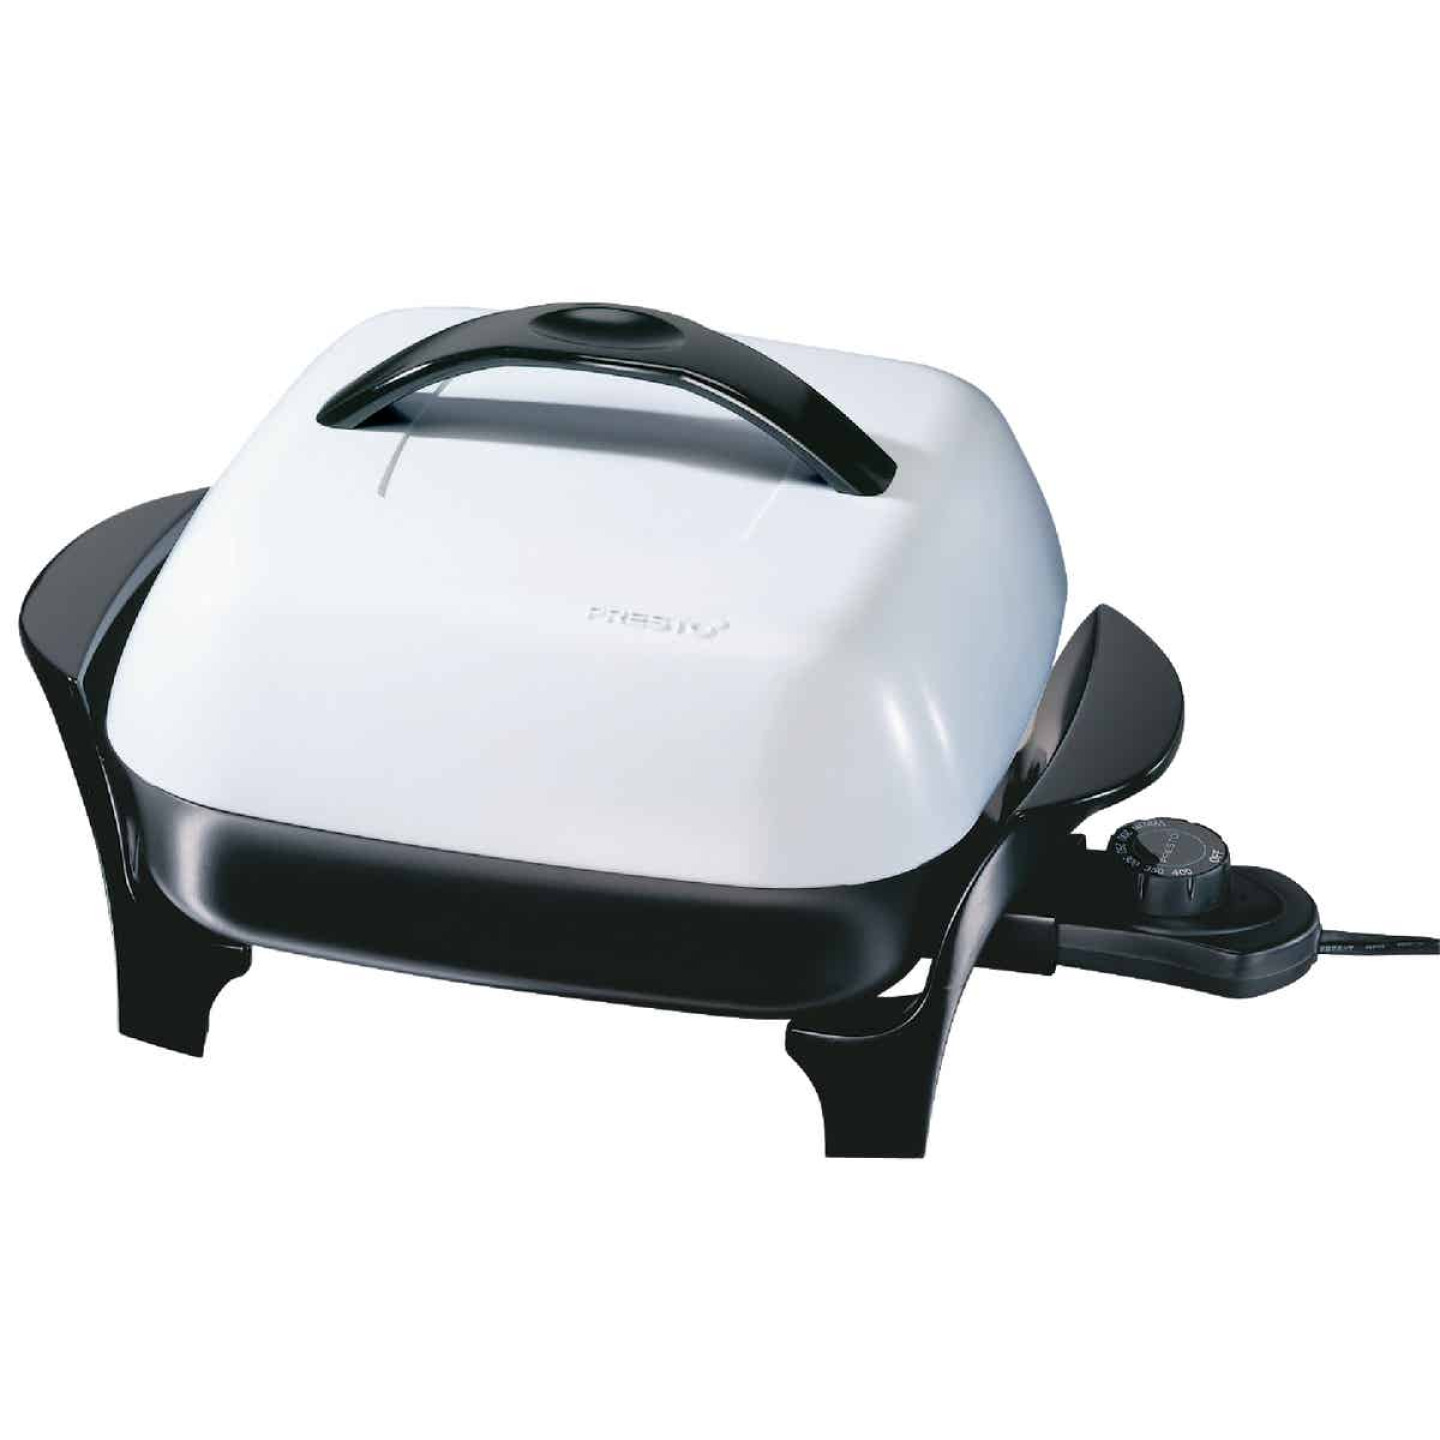 Presto 11 In. Electric Skillet Image 1